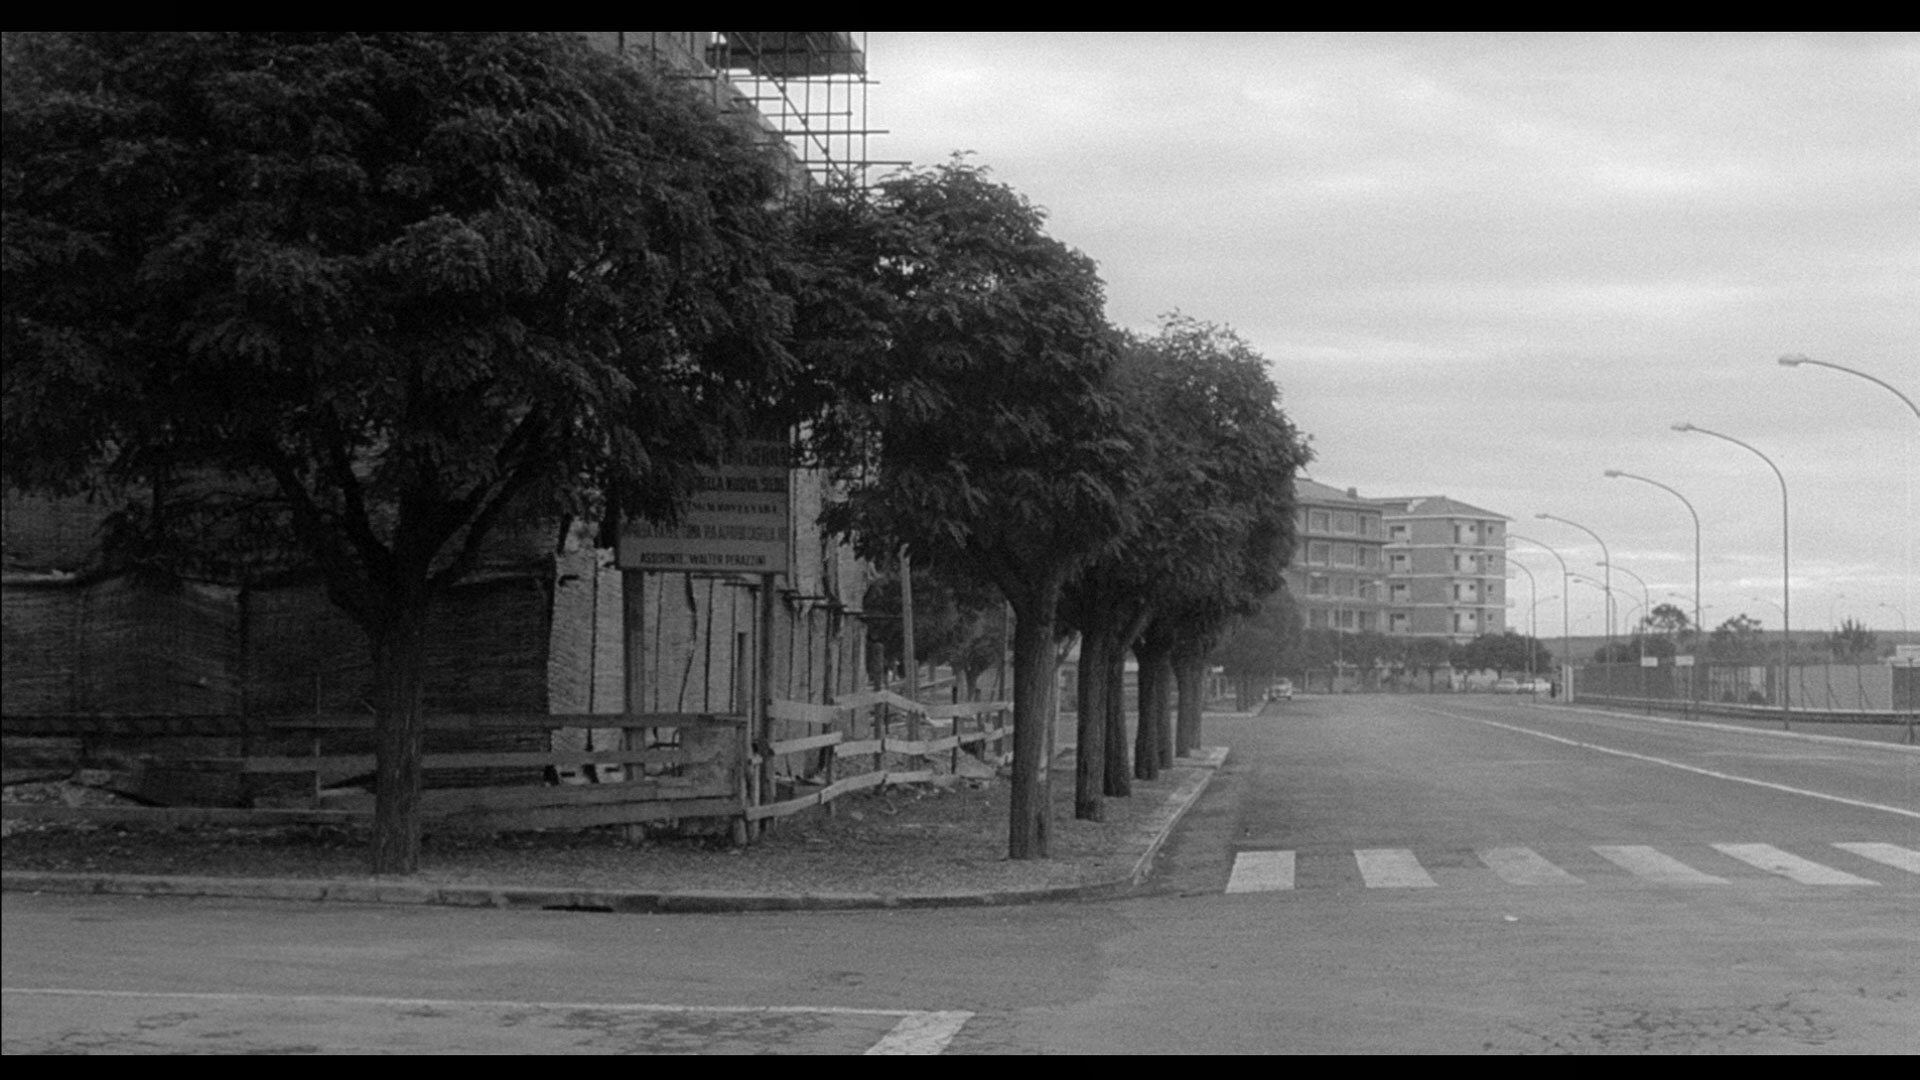 L'Eclipse de Michelangelo Antonioni